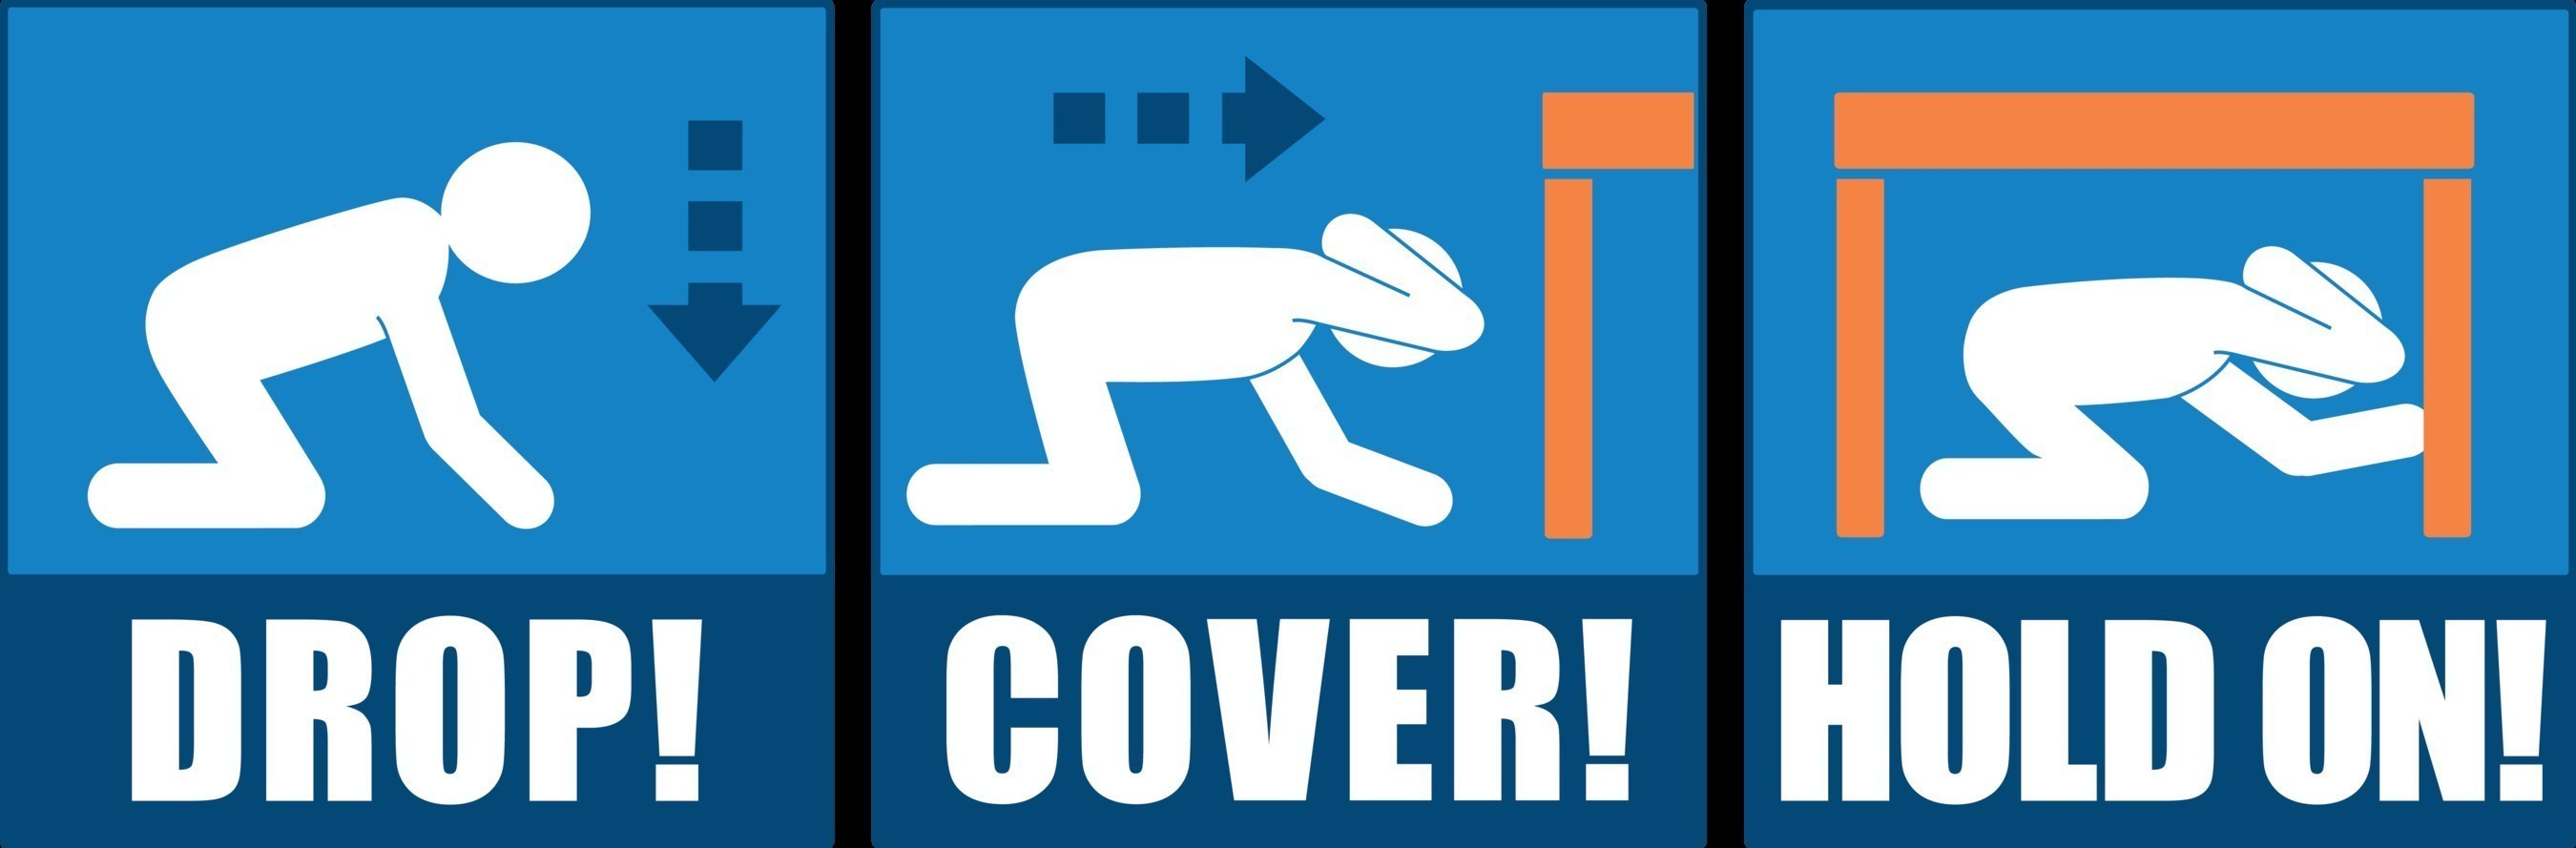 Great ShakeOut Earthquake Drills / Drop, Cover, and Hold On image